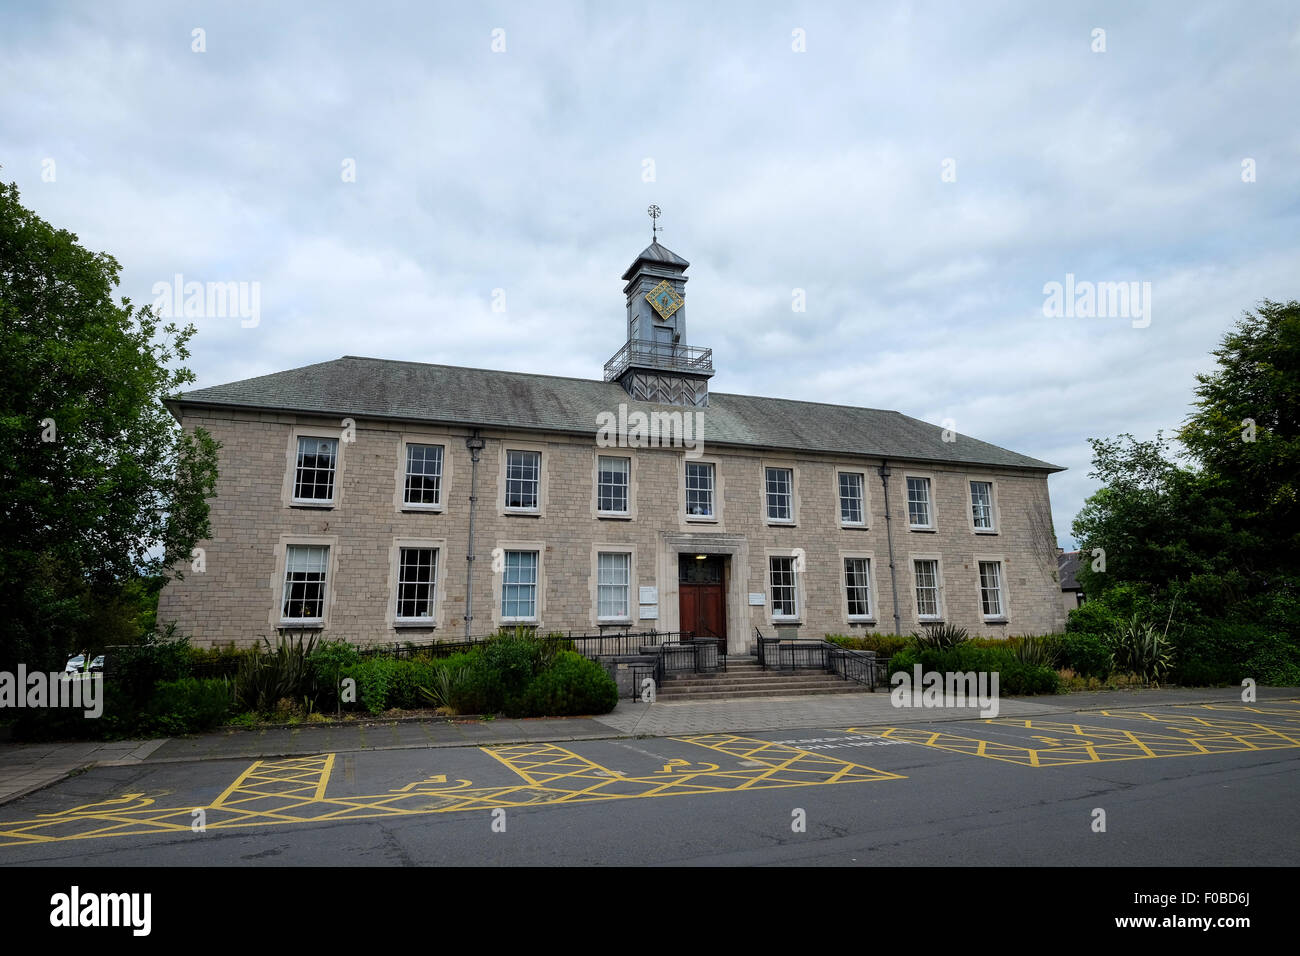 kendal county hall exterior, Busher Walk, Kendal - Stock Image